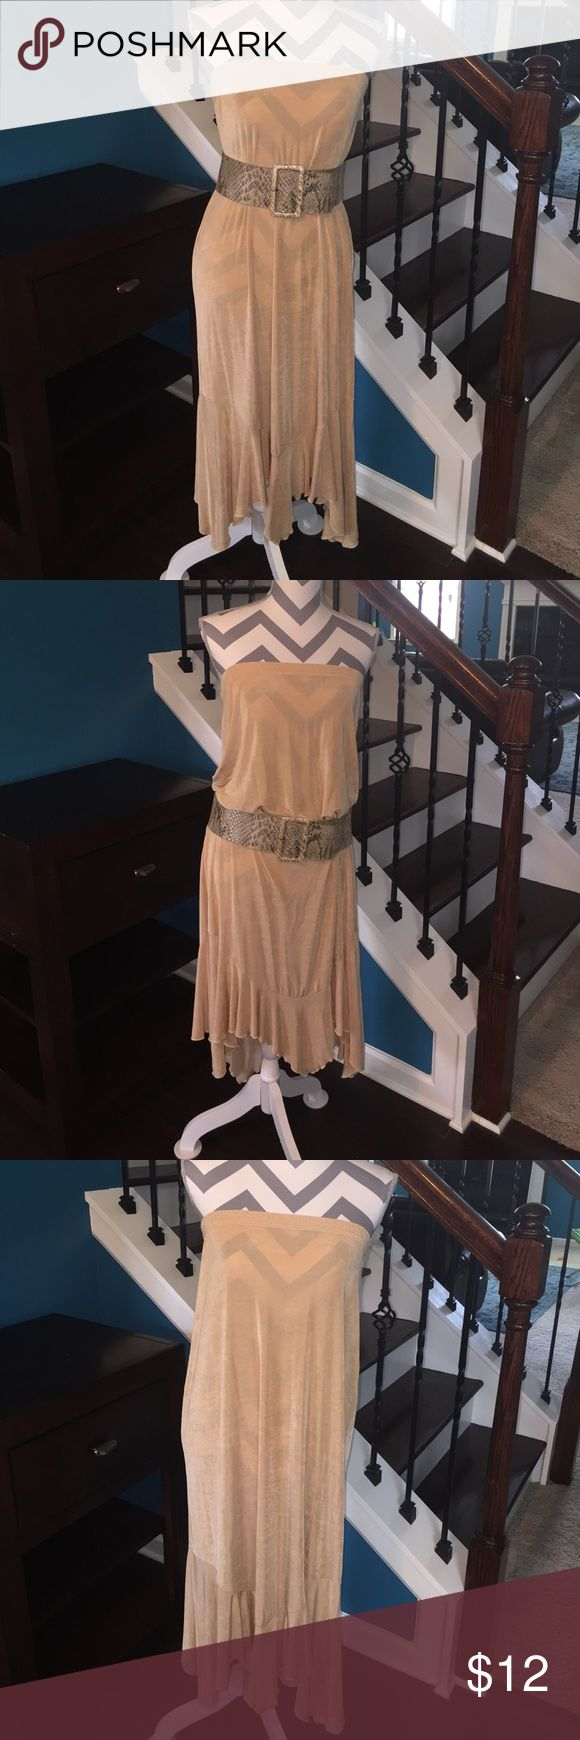 Bouncy Tan Maxi Skirt Versatile maxi skirt. Wear as a dress with a slip or as a fun cover up at the beach. Super stretchy waist. Sheer material. Fun ruffled hem. Skirts Maxi